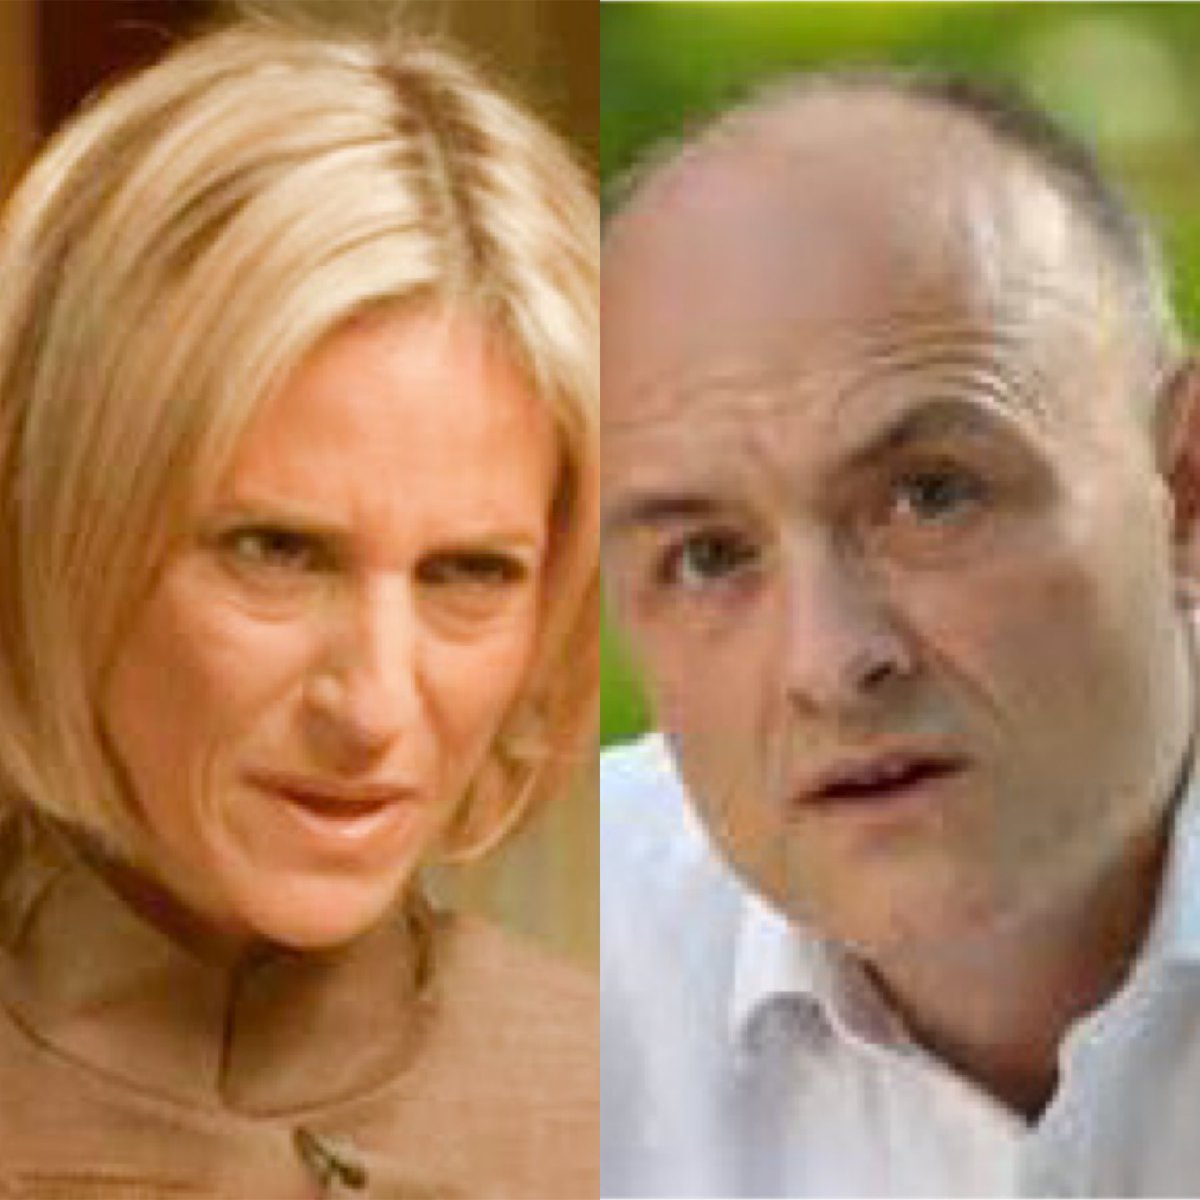 Now that @maitlis has been found to be guilty of breaching the journalistic rules under which the publicly funded @BBC is bound and @DominicCumins has been found to be innocent, I presume we can expect @Maitlis to do the honourable thing and resign or be sacked by @BBC